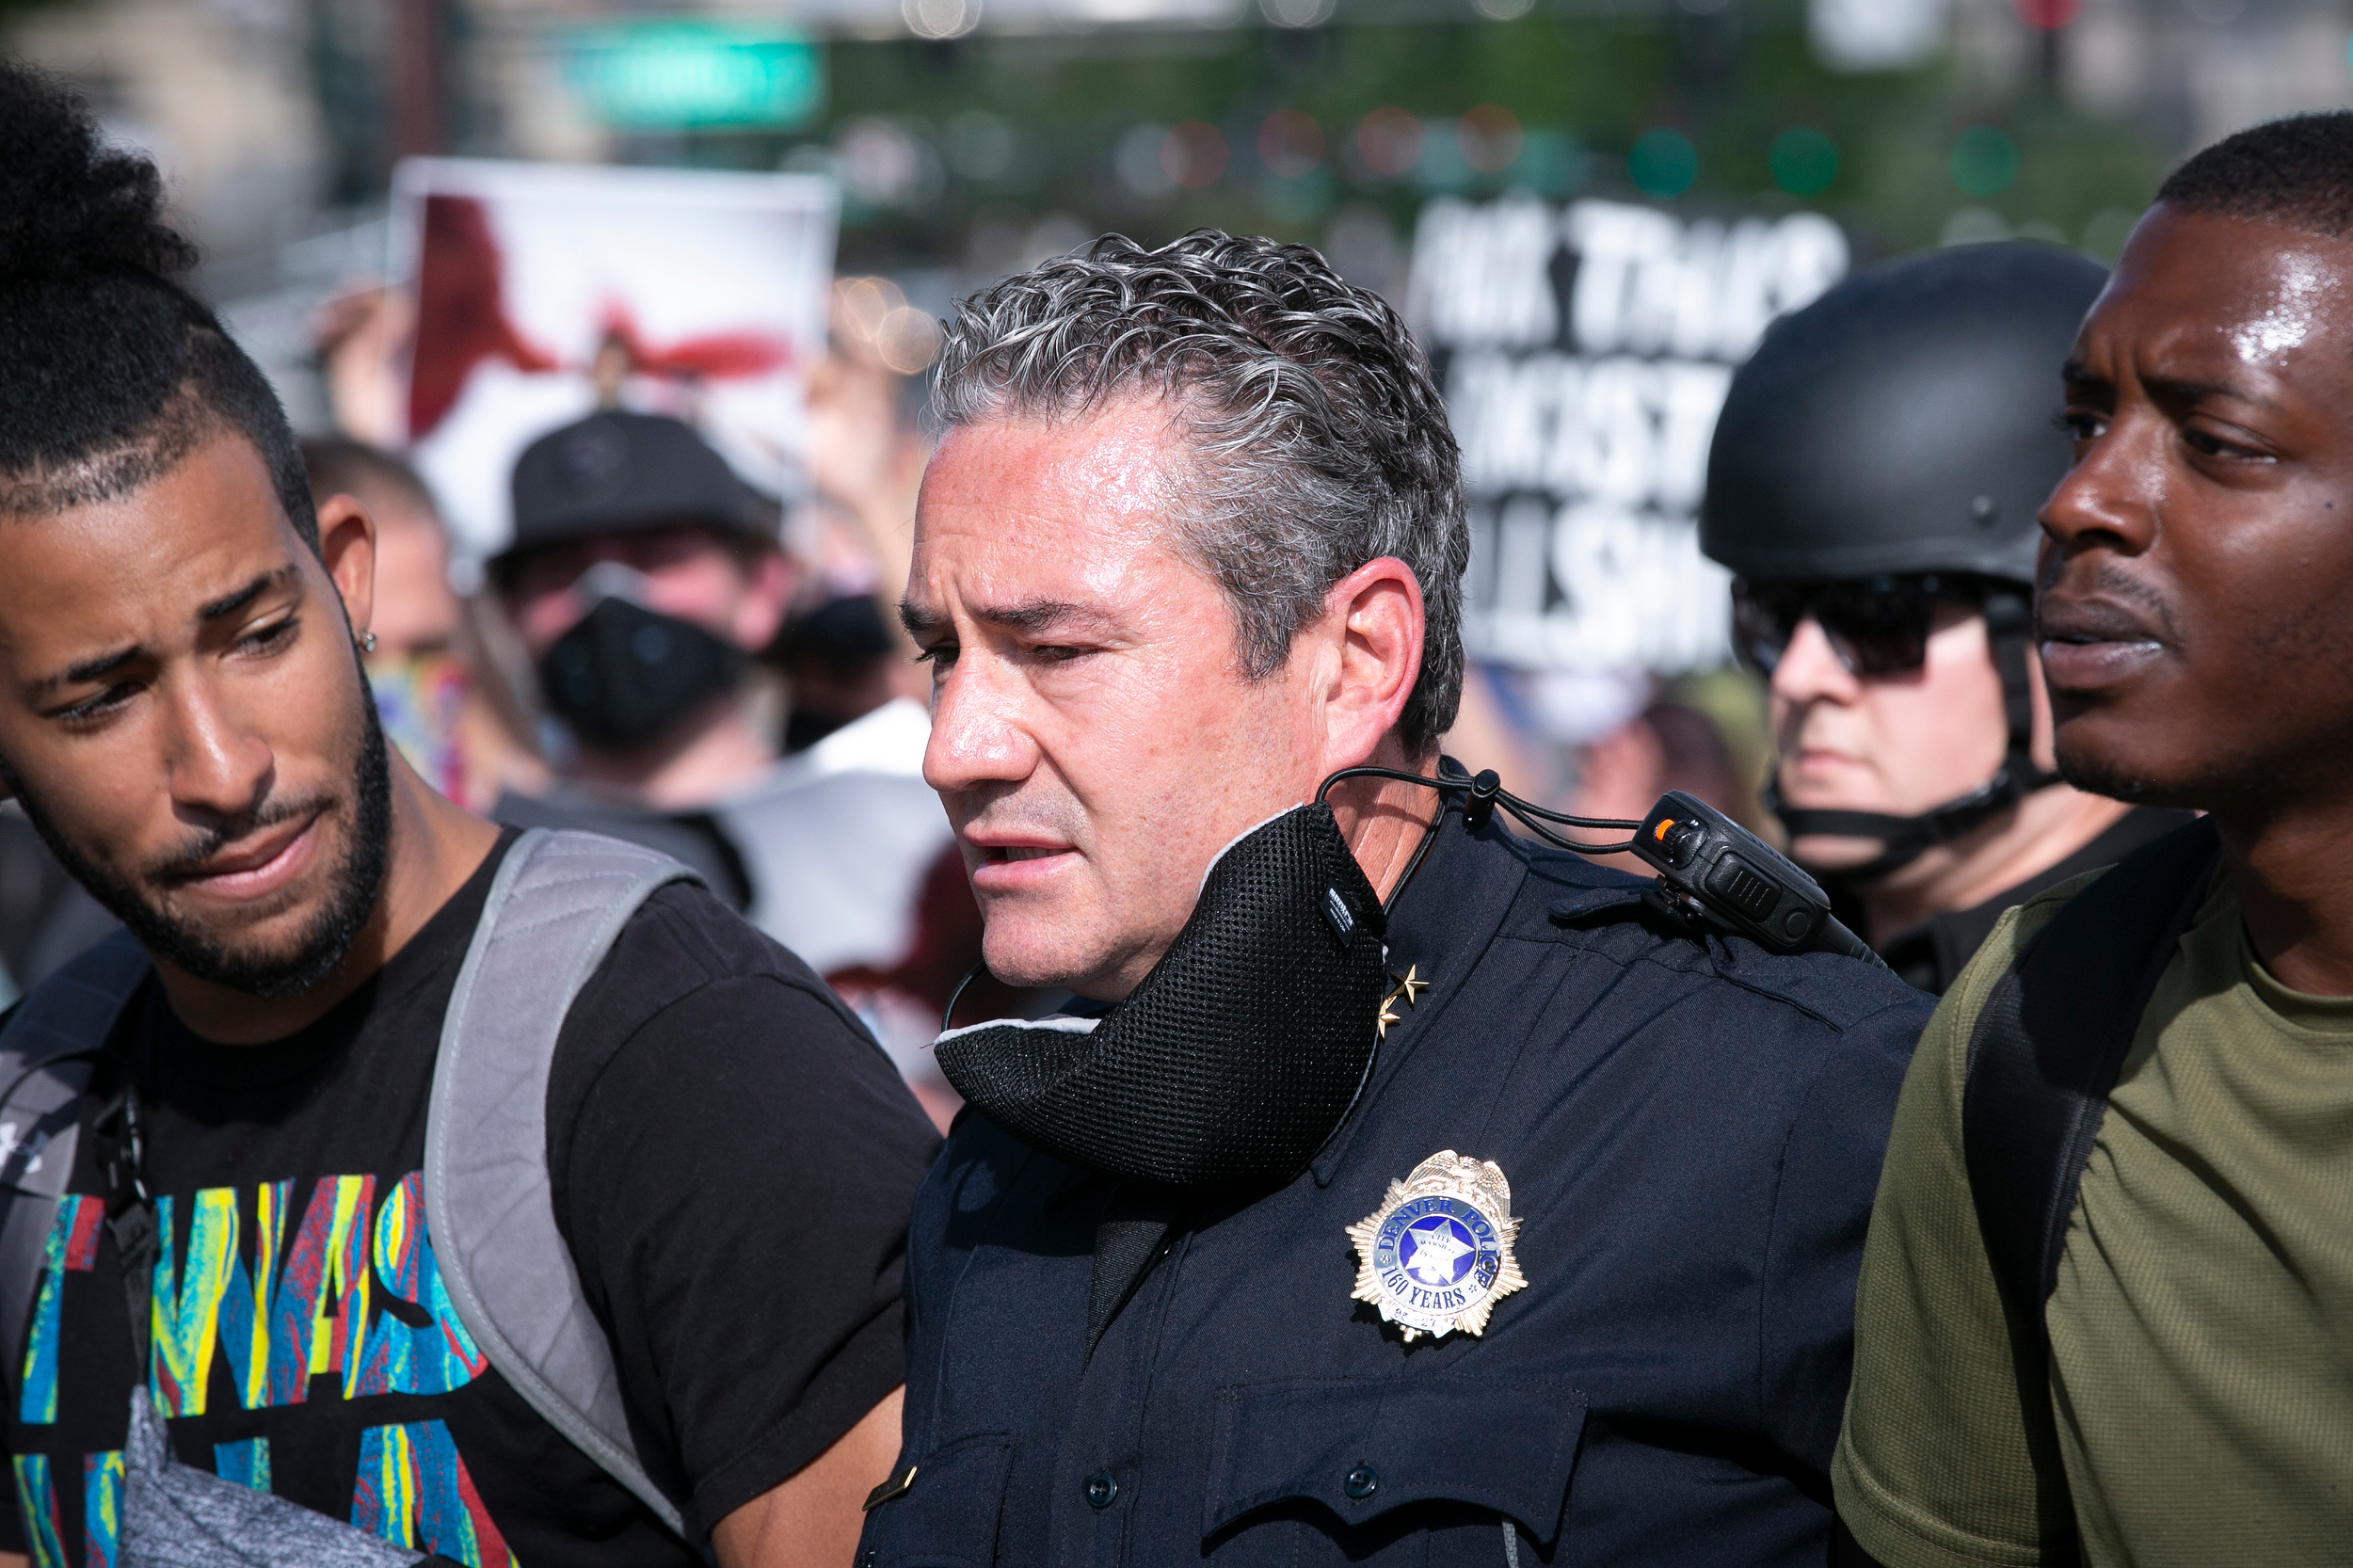 Denver Police Chief Pazen Joins Demonstartors Protesting George Floyd's Death In Minneapolis